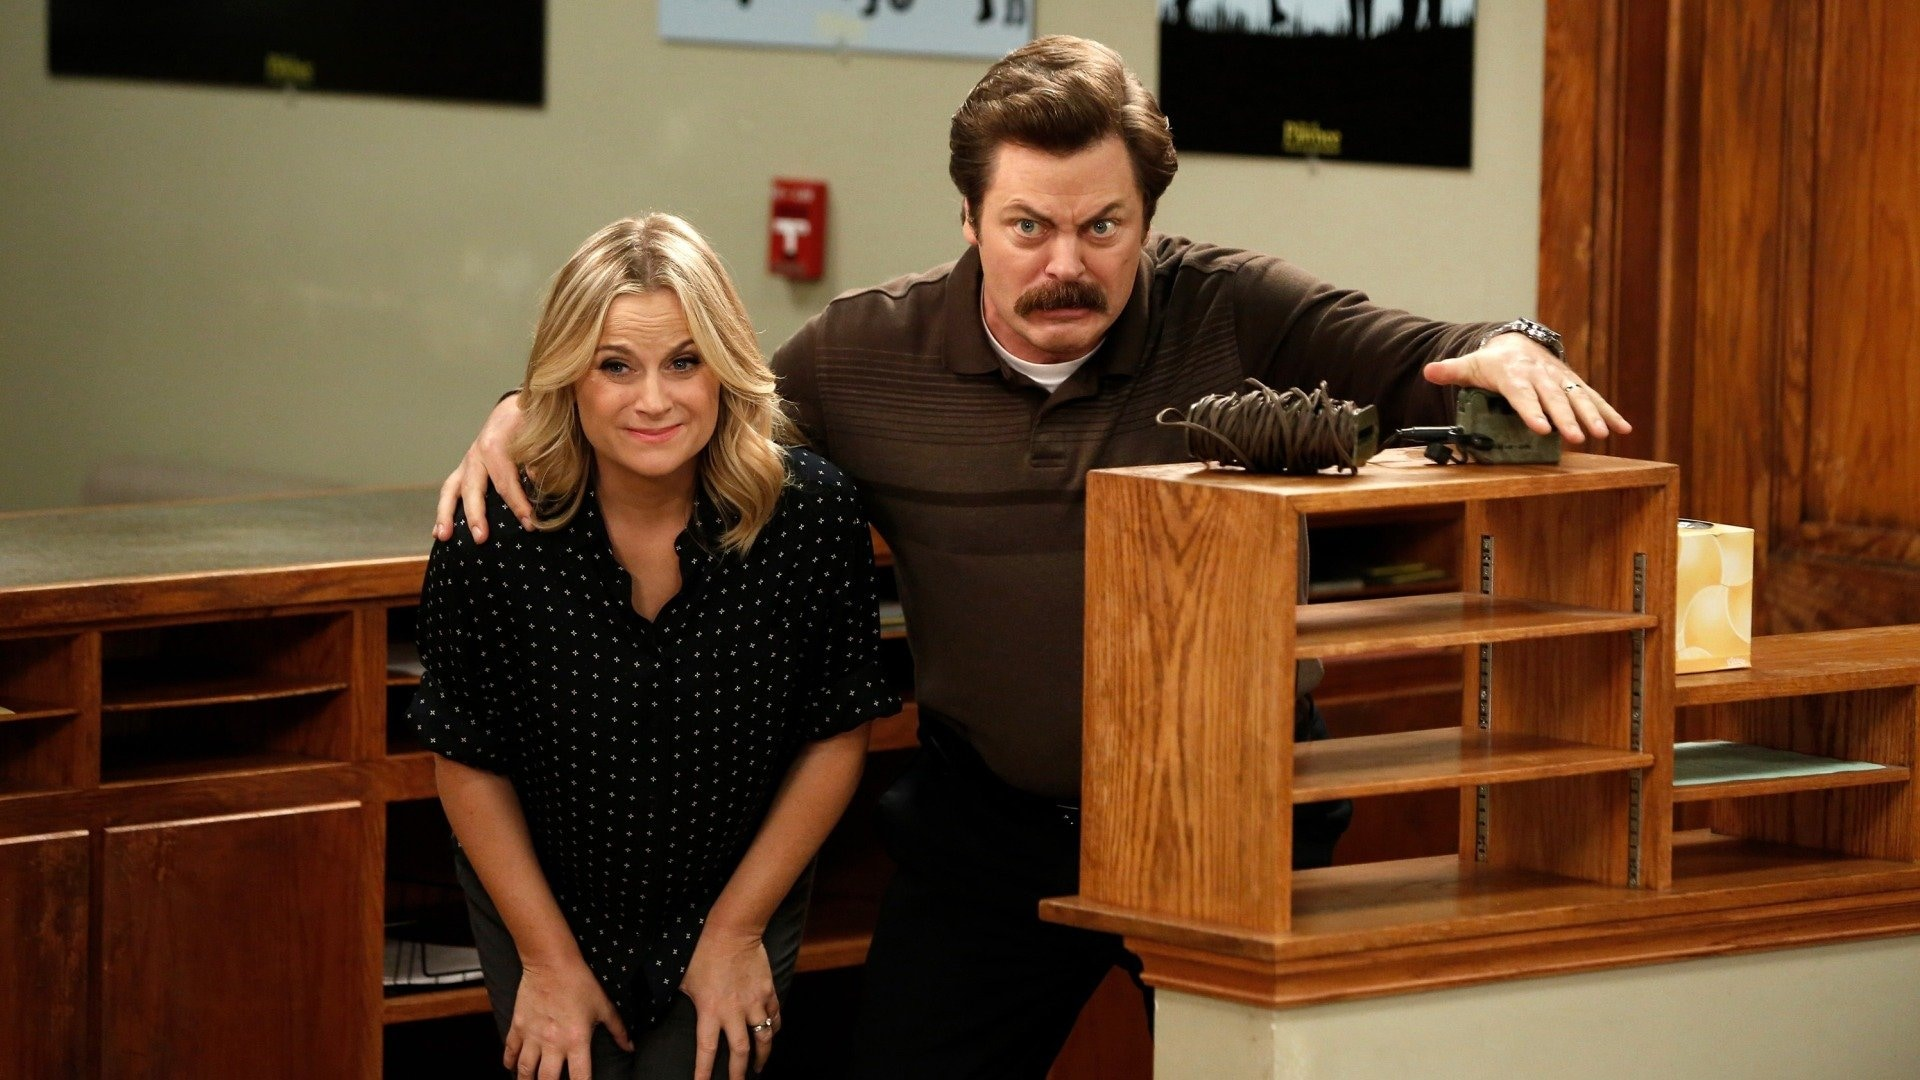 Leslie and Ron